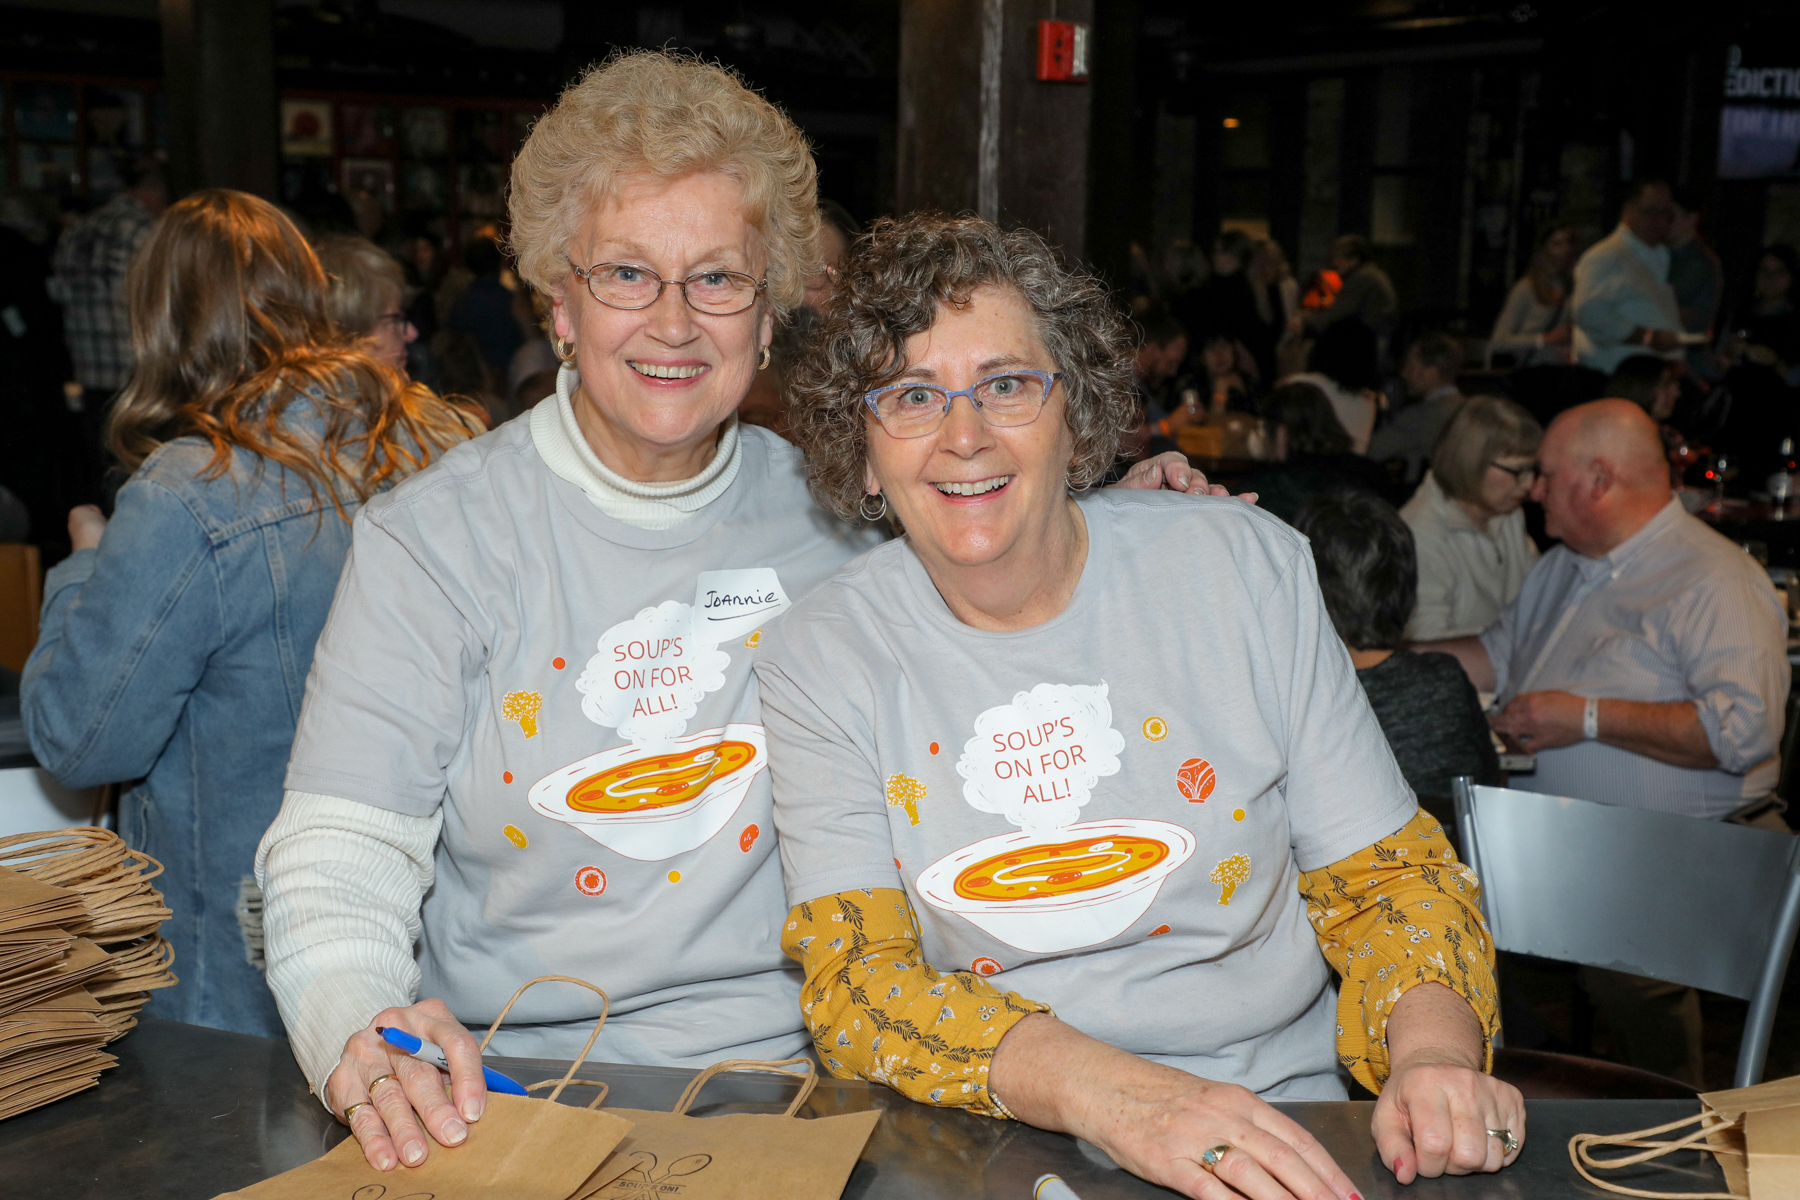 People came to the Soup's On For All event at The B.O.B. in downtown Grand Rapids on Jan. 27, 2020. (Michael Buck/WOOD TV8)